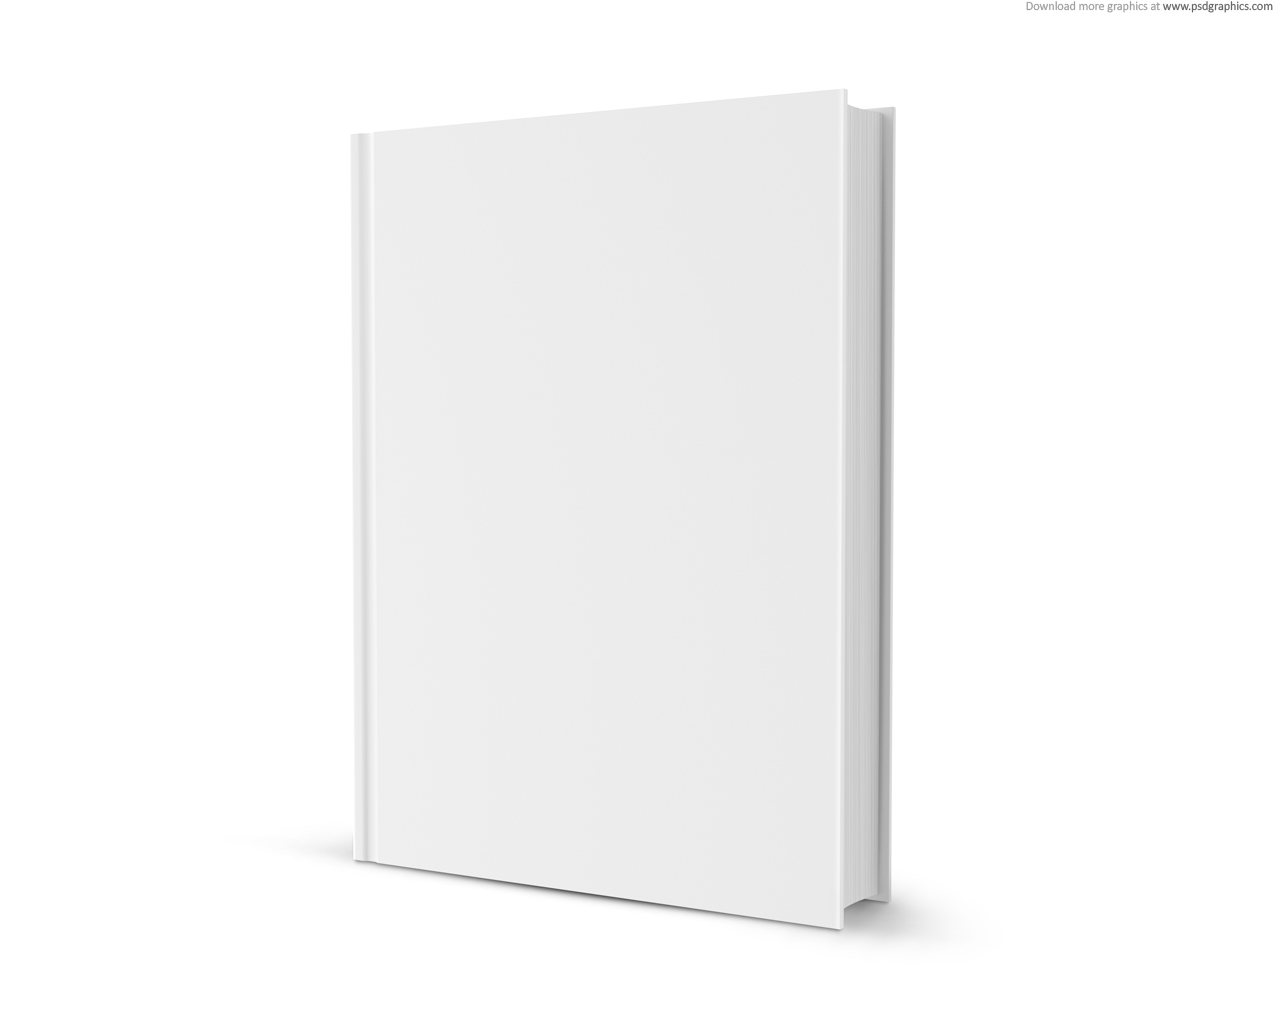 blank books template empty 3d background file without write psdgraphics death perspective bill format lost